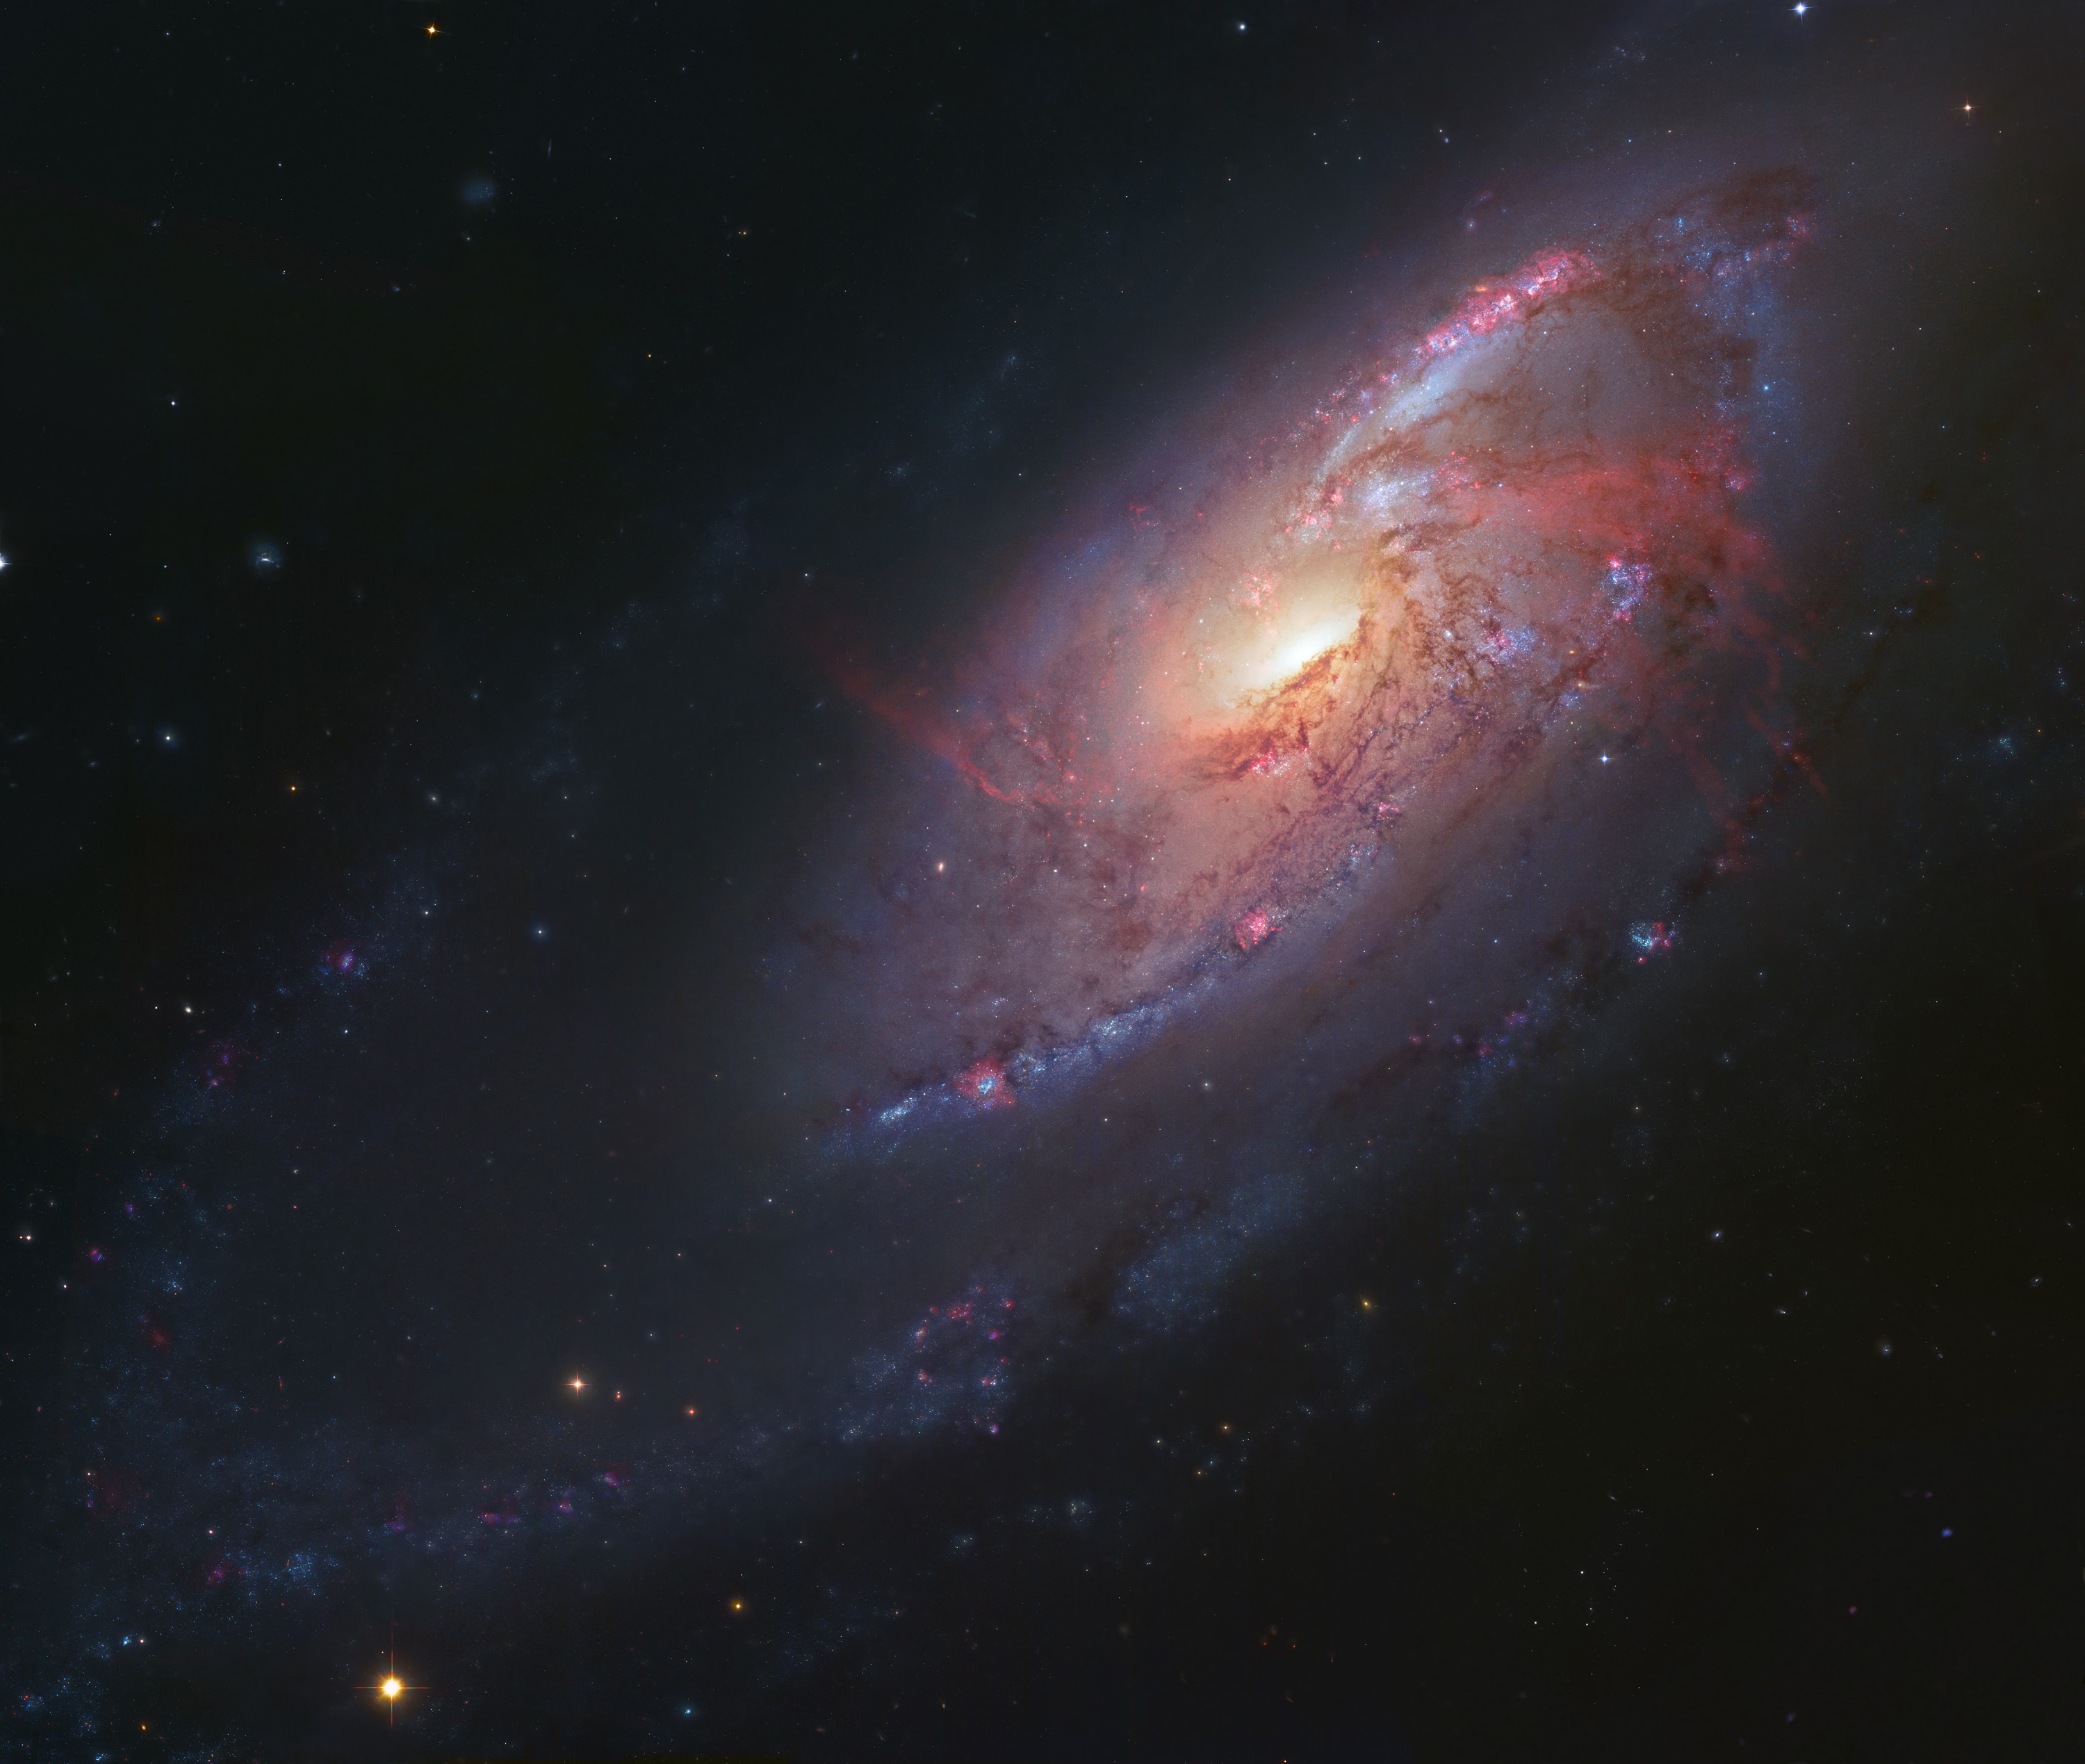 APOD: 2013 February 6 - The Arms of M106